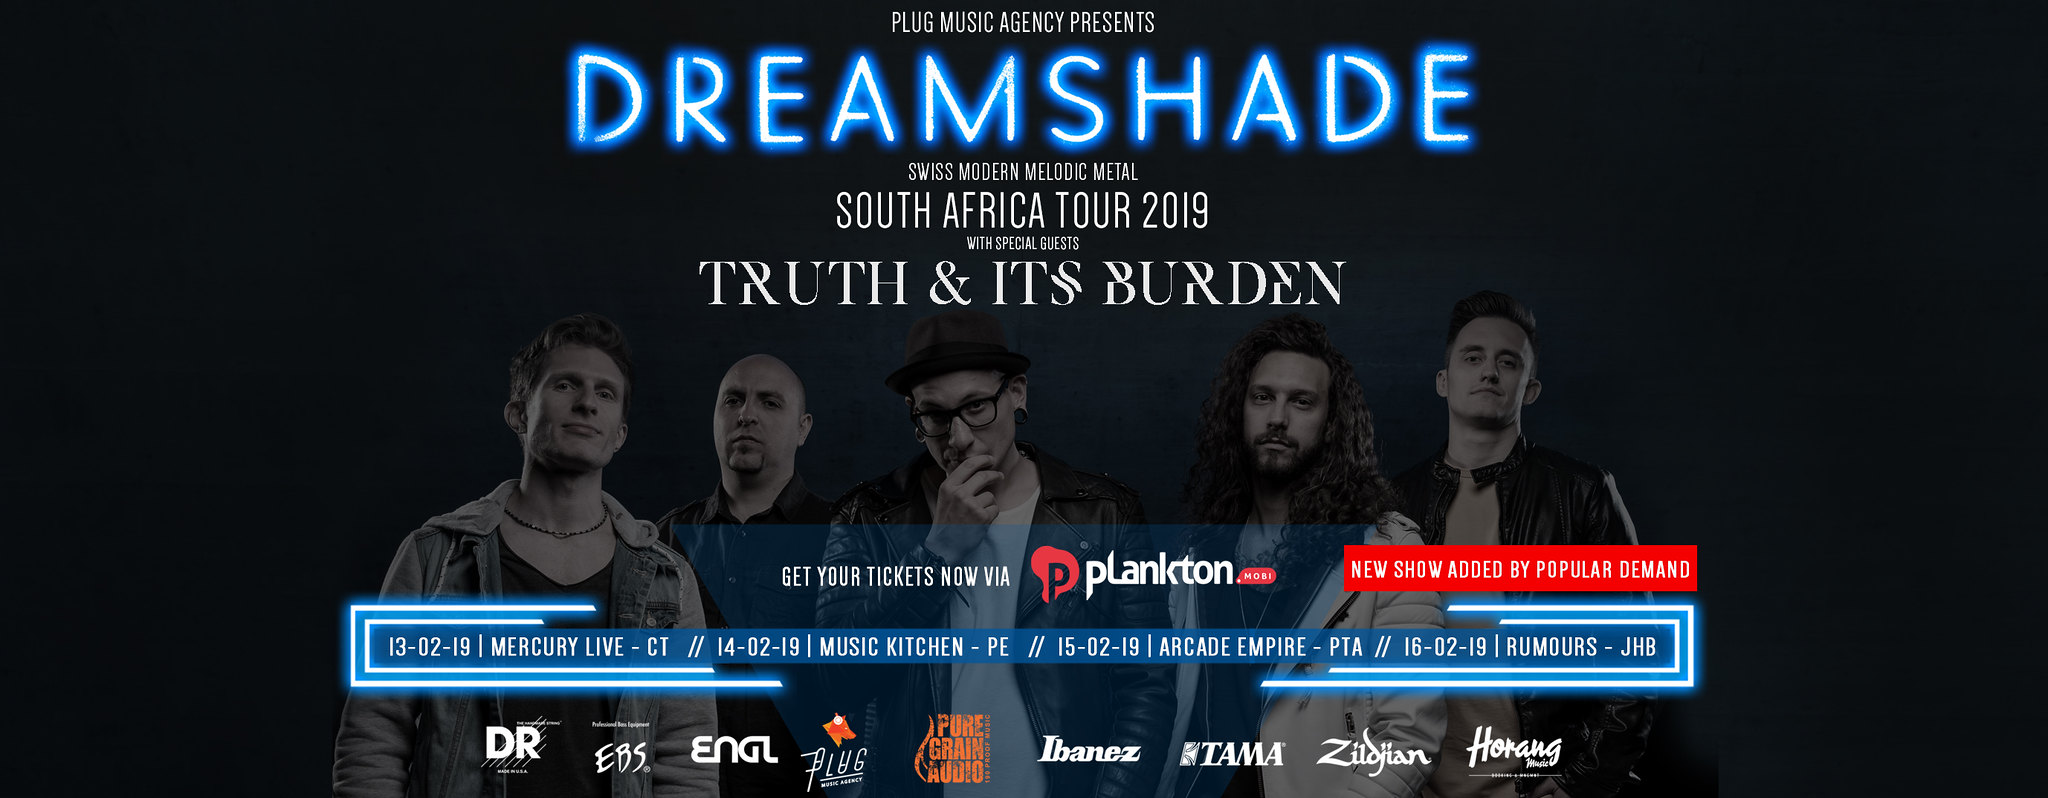 dreamshade_south_africa_tour_flyer